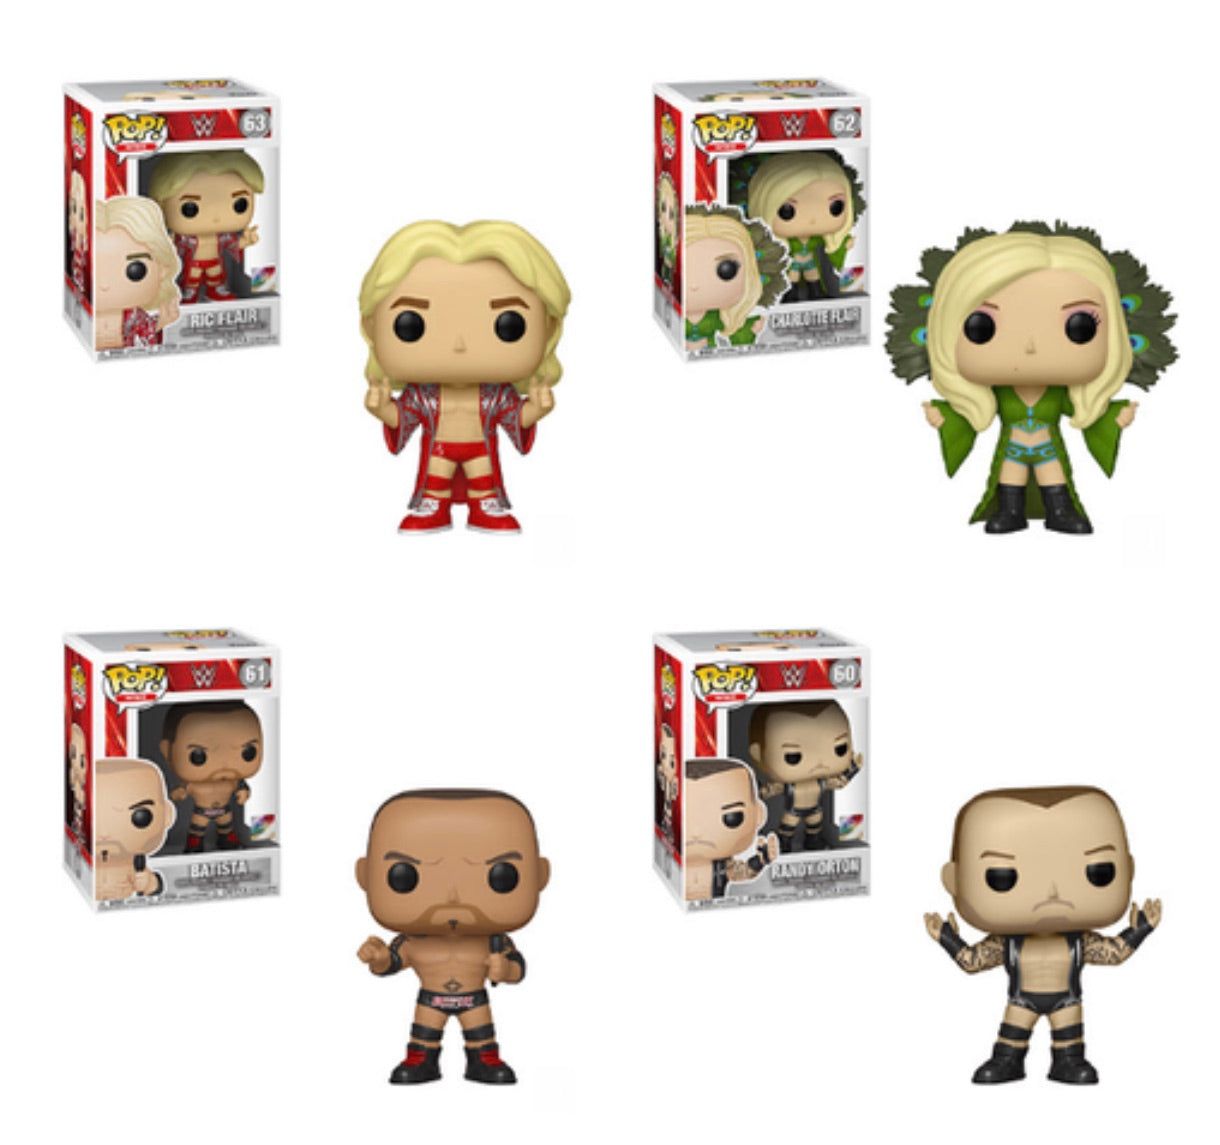 WWE FUNKO POP! COMPLETE SET OF 4 (PRE-ORDER)